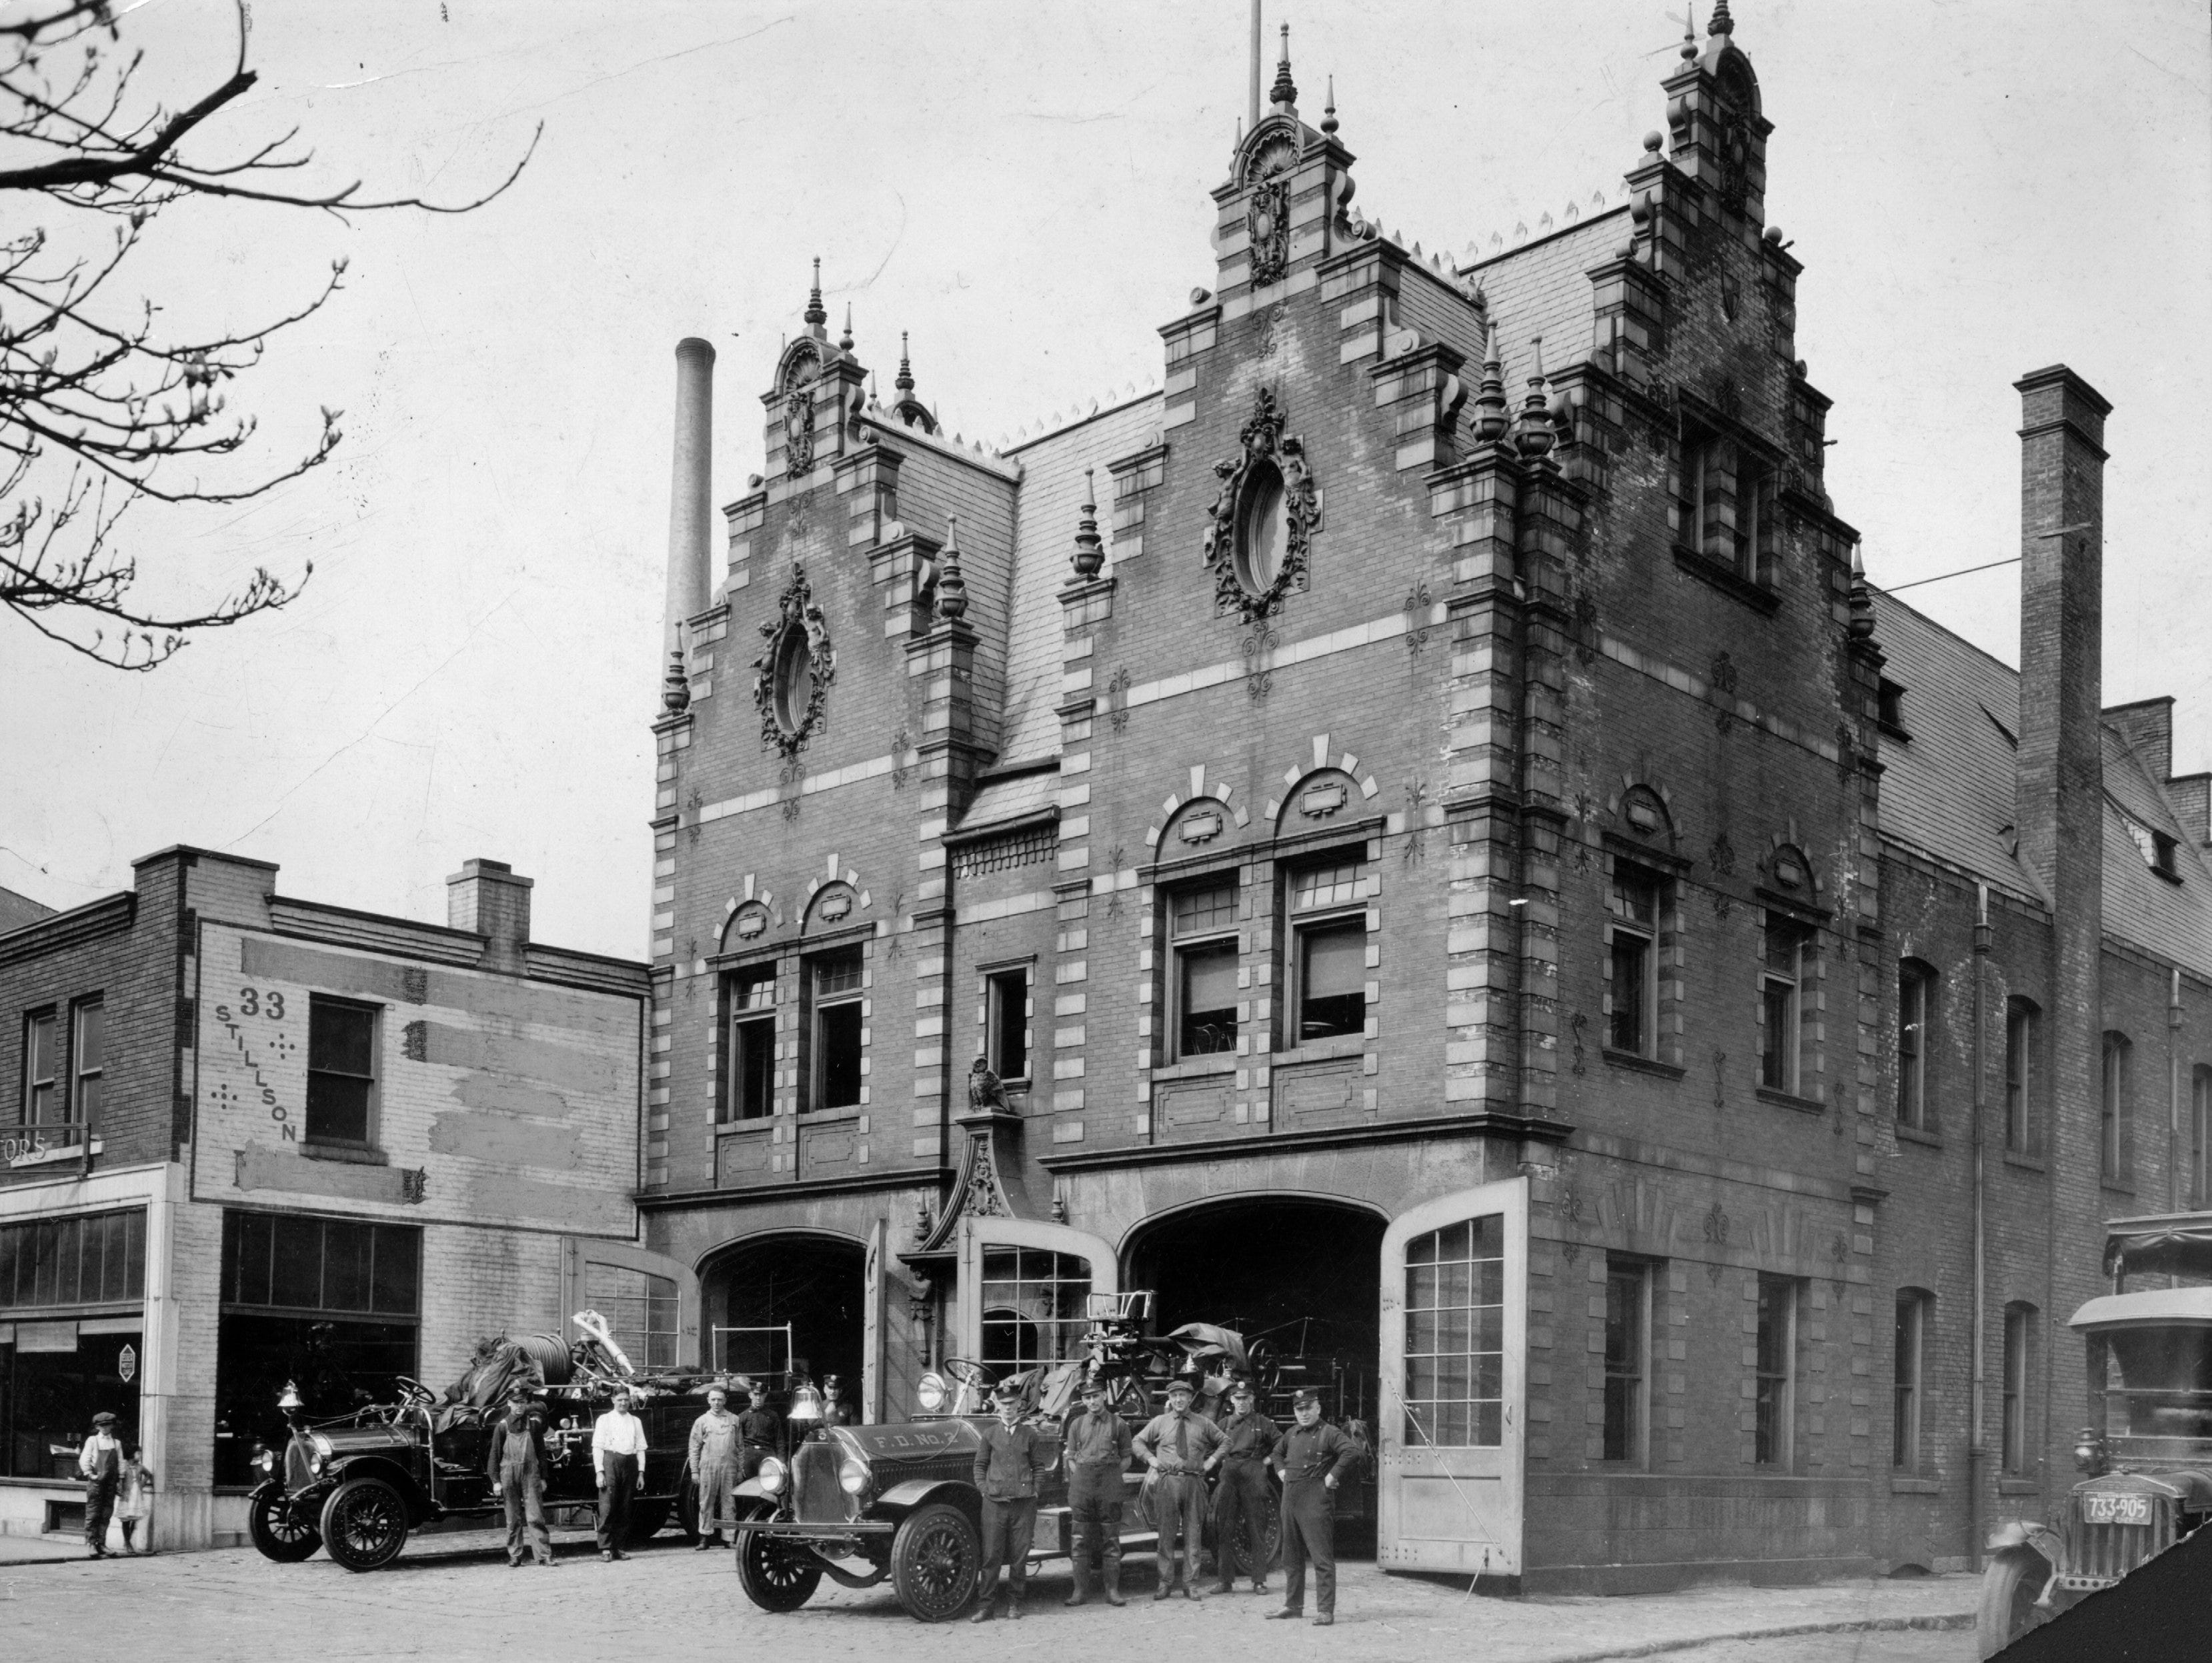 This photo from 1926  shows the fire station on Stillson Street. The firemen are posing with their new motorized equipment.